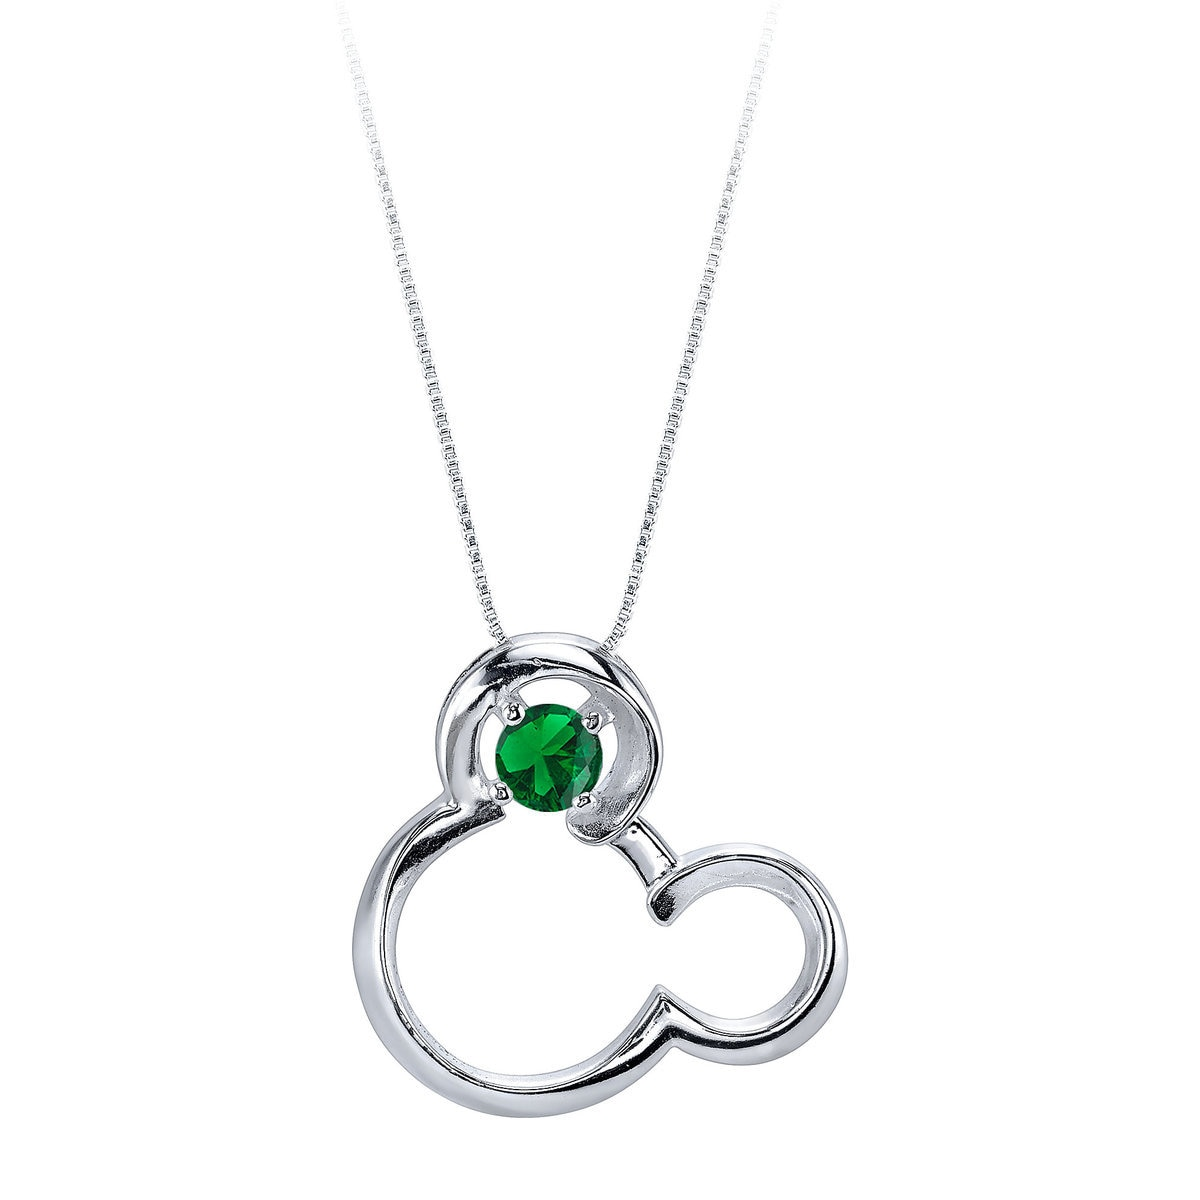 Product Image of Mickey Mouse May Birthstone Necklace for Women - Emerald # 1